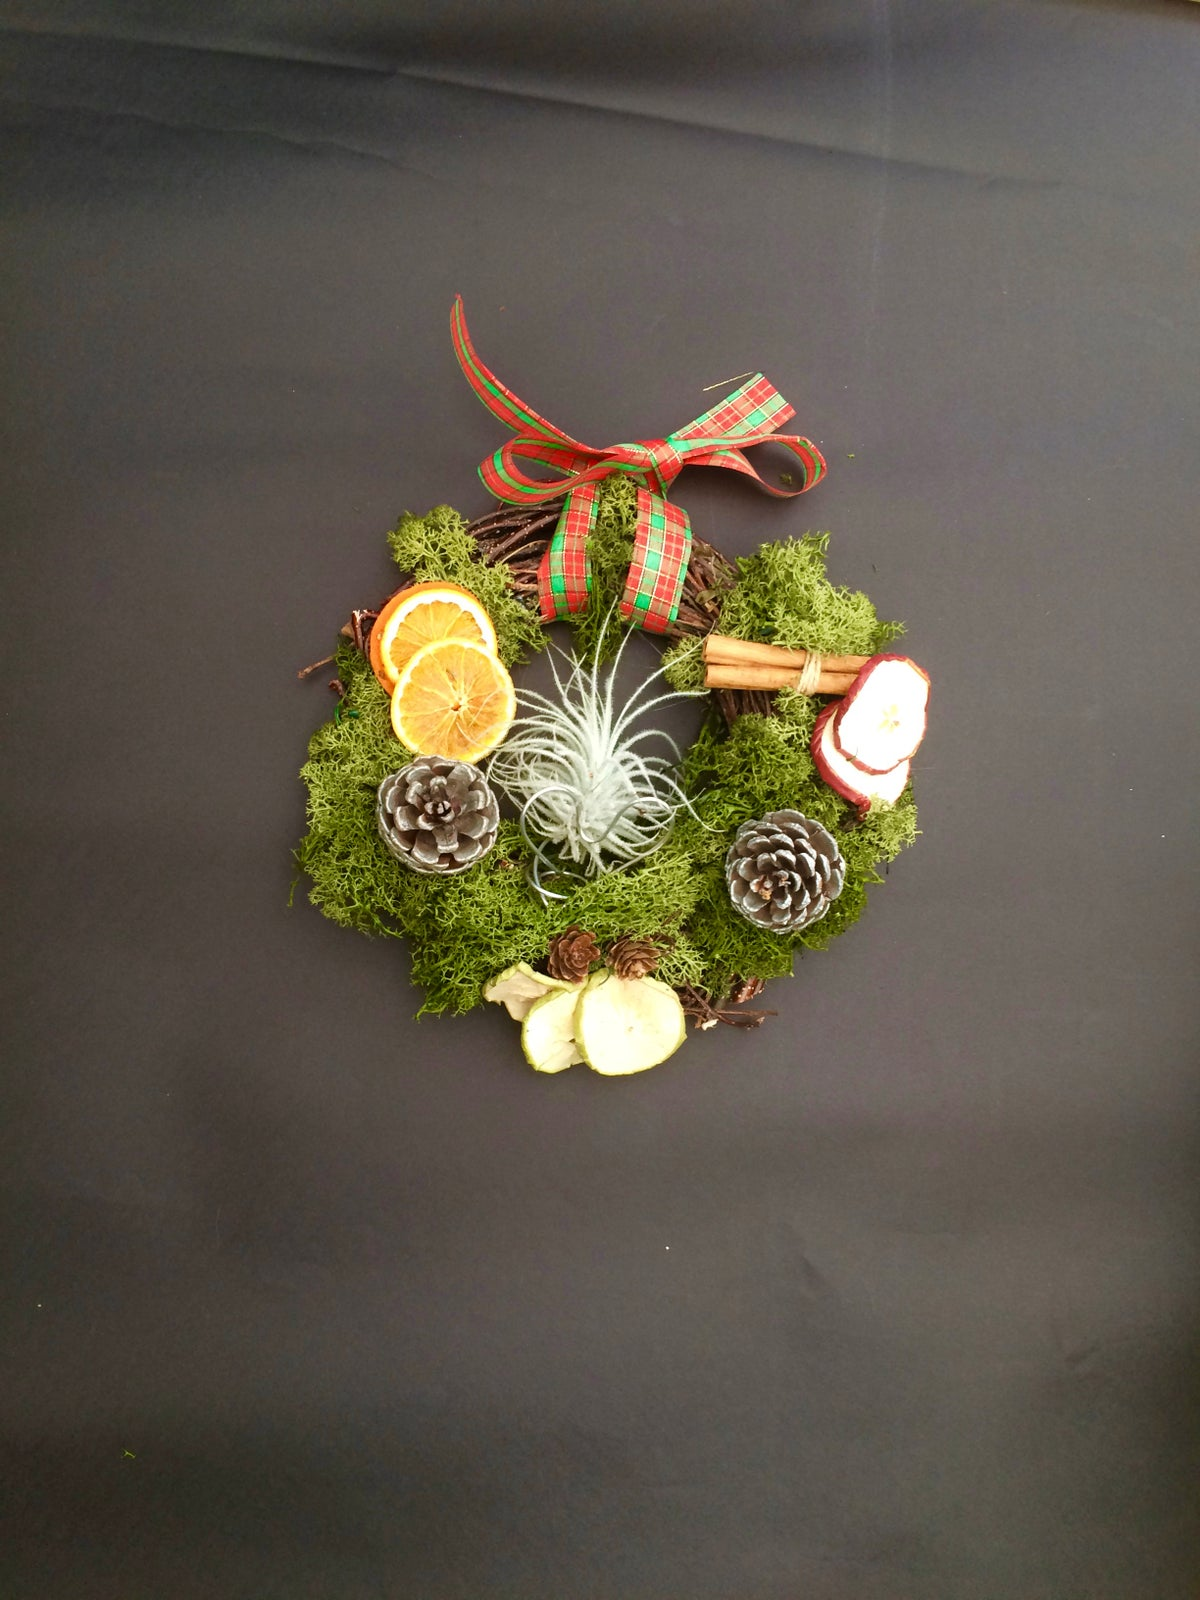 Image of Christmas wreath